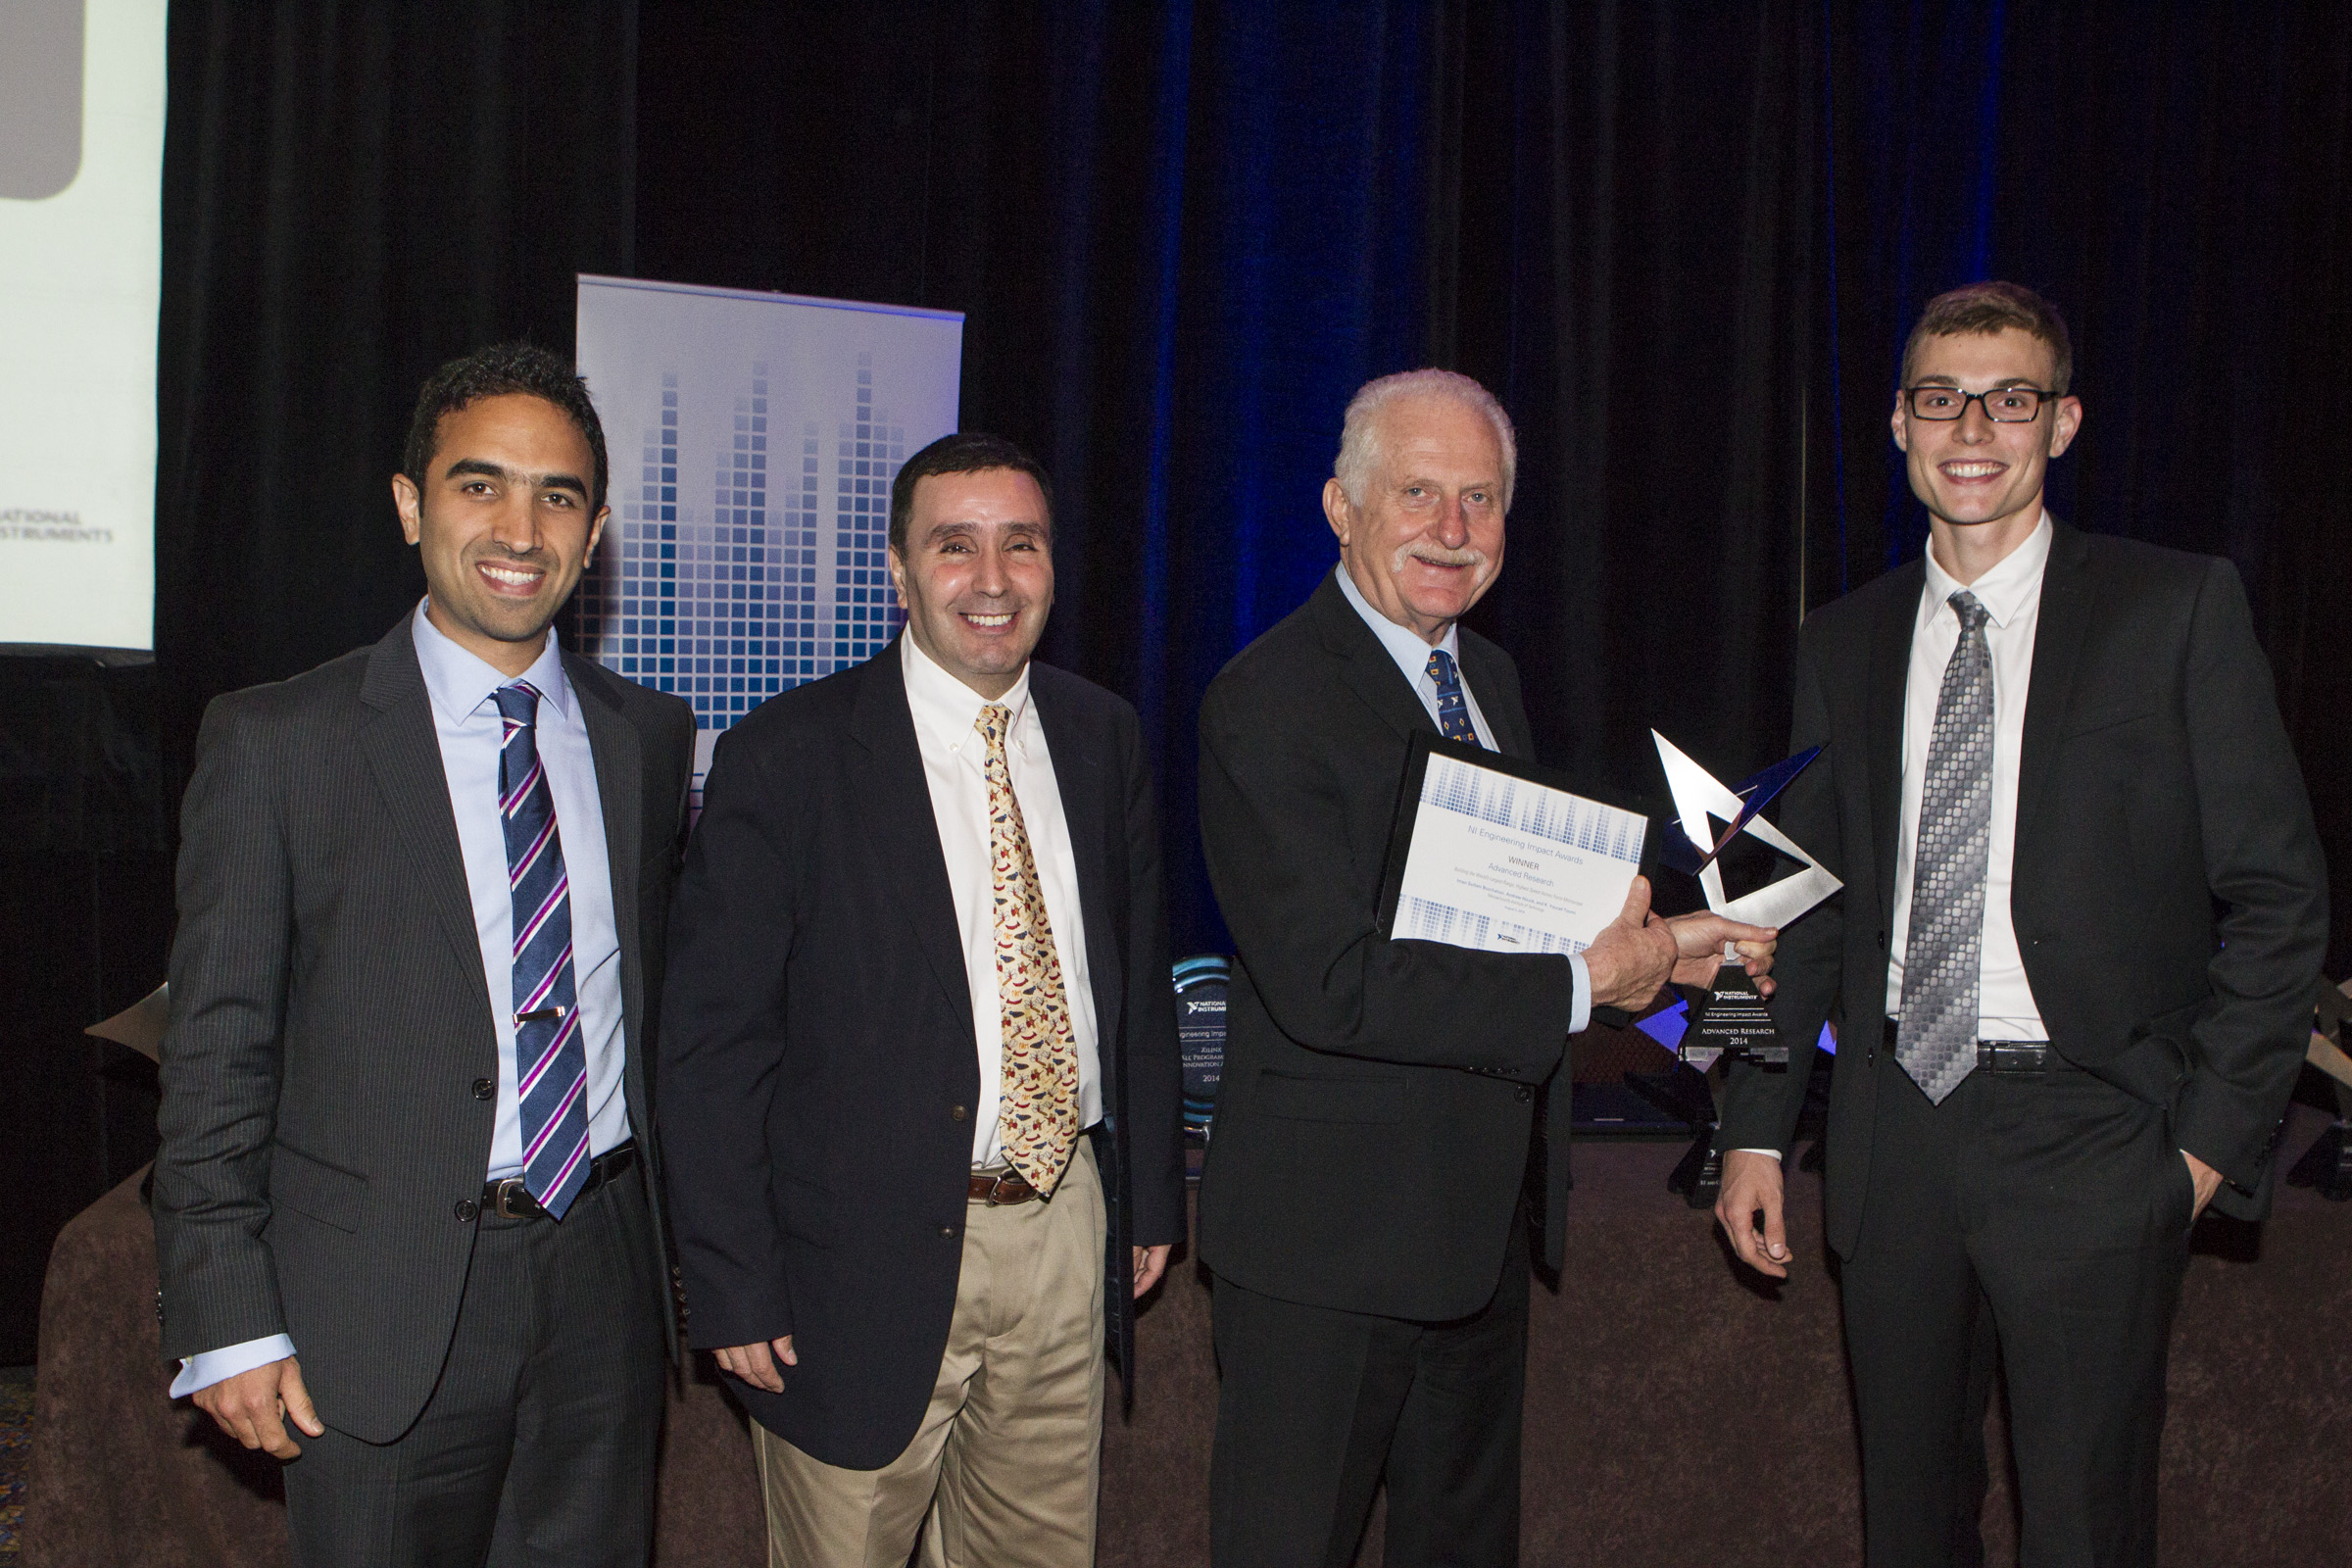 AFM team won 2014 National Instruments Engineering Impact Awards